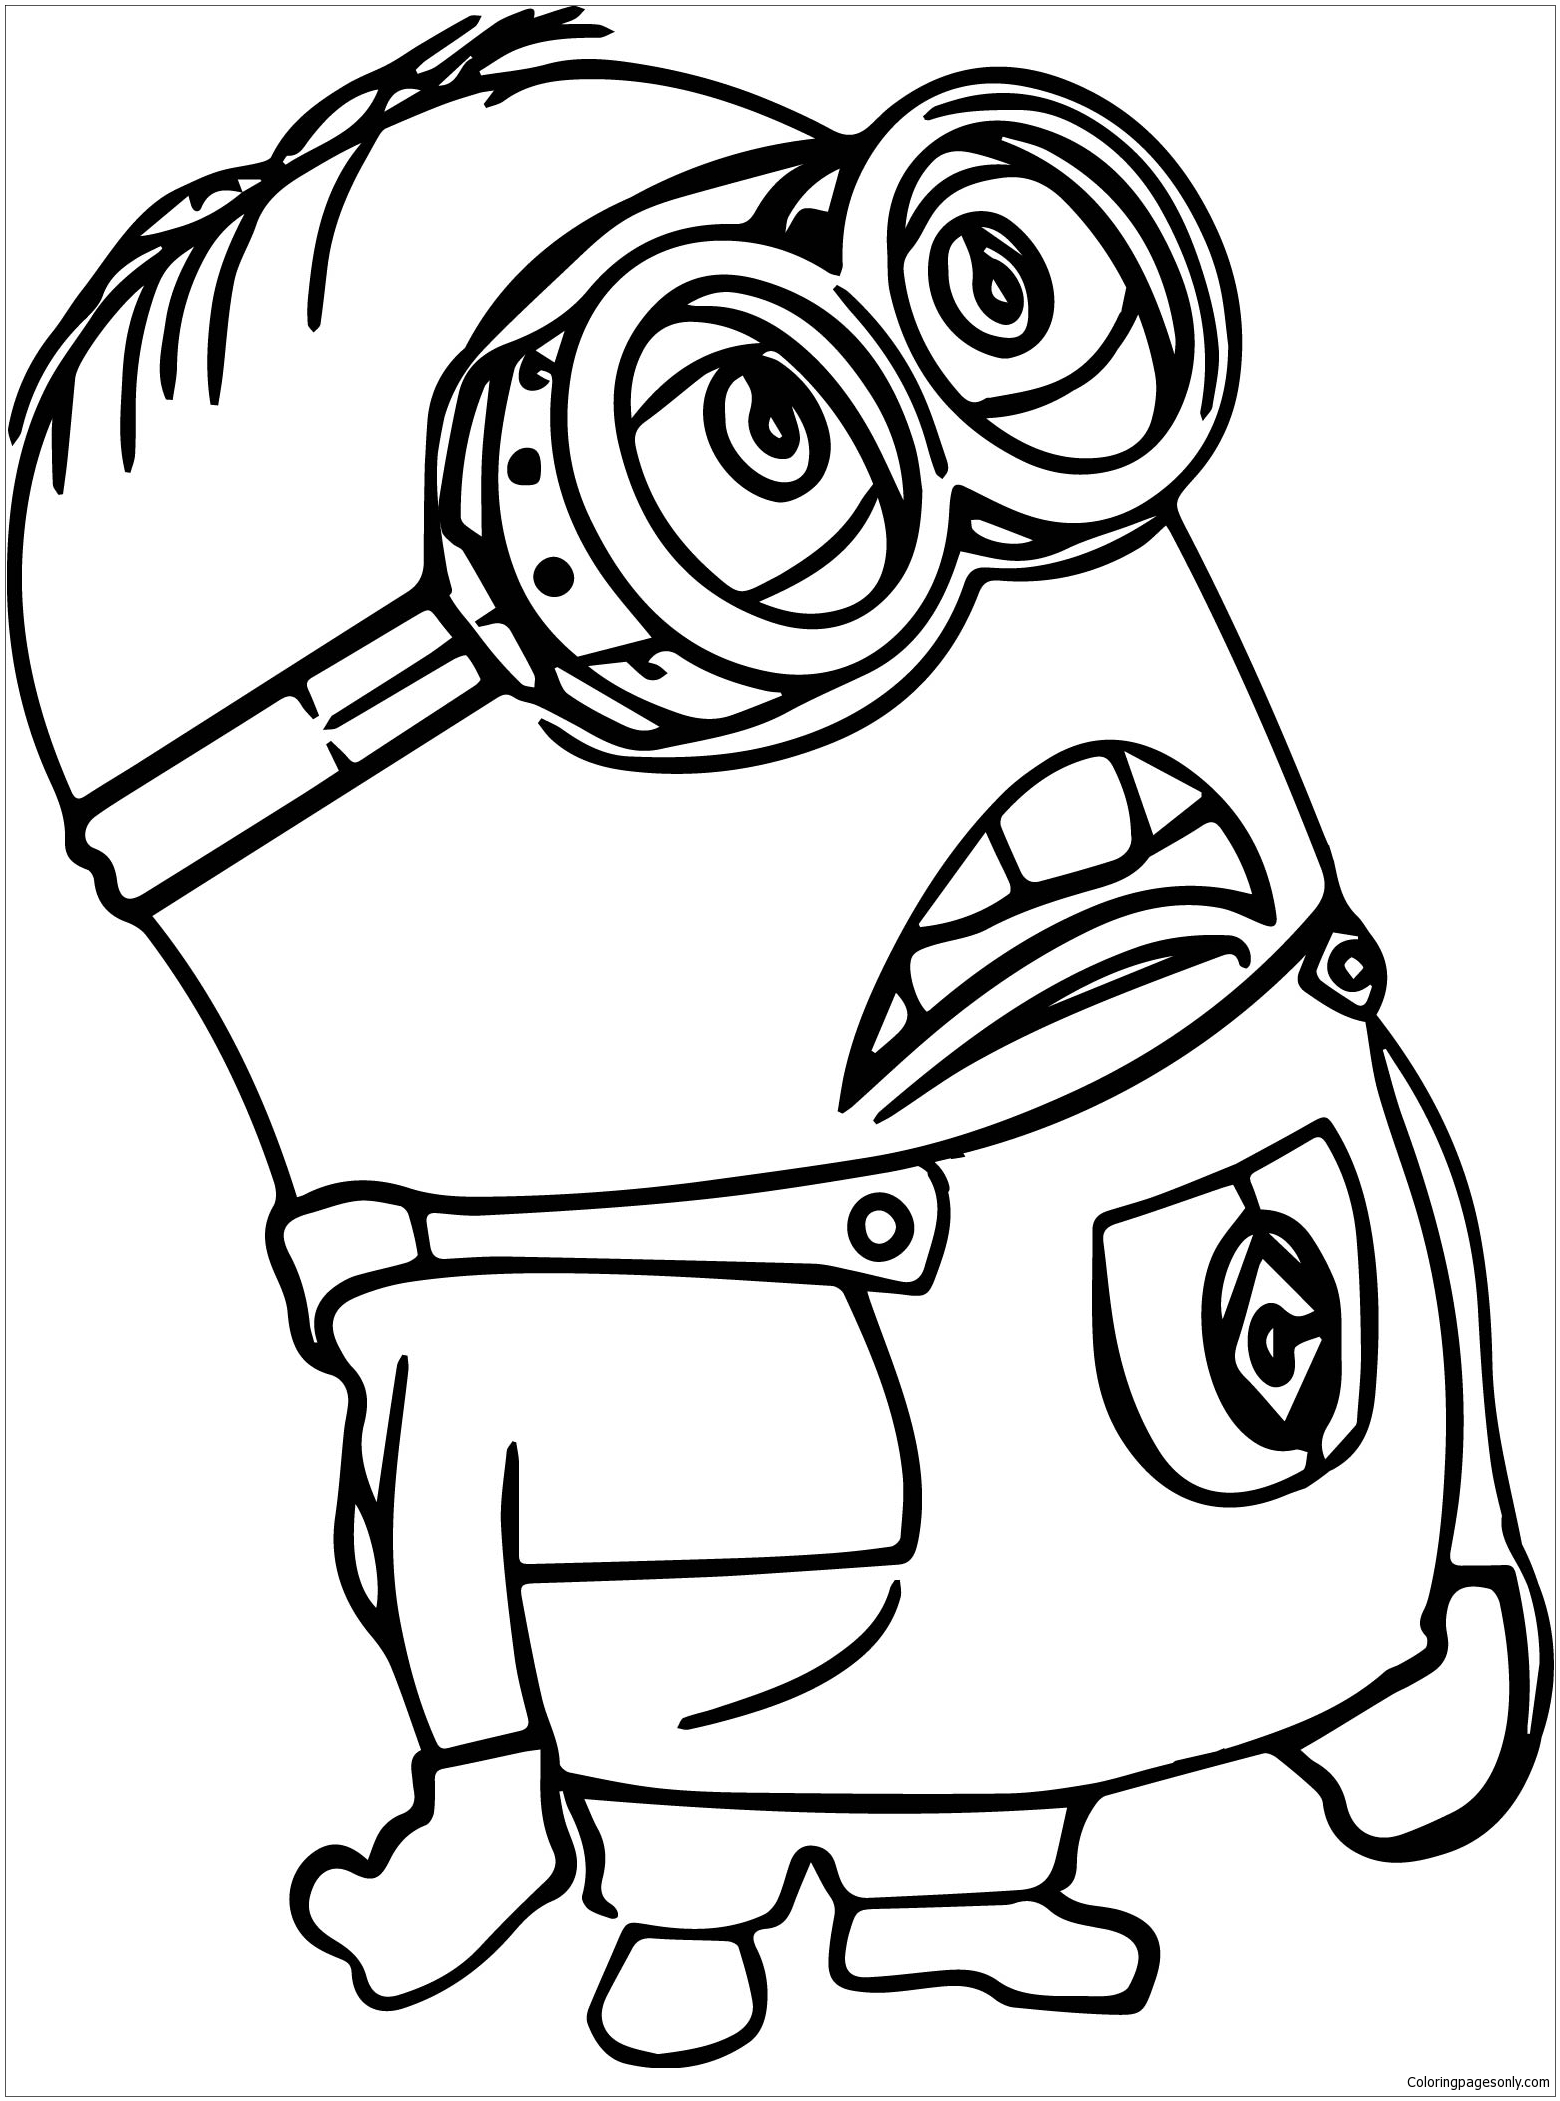 free despicable me coloring pages despicable me 3 minions coloring page free coloring me despicable pages coloring free